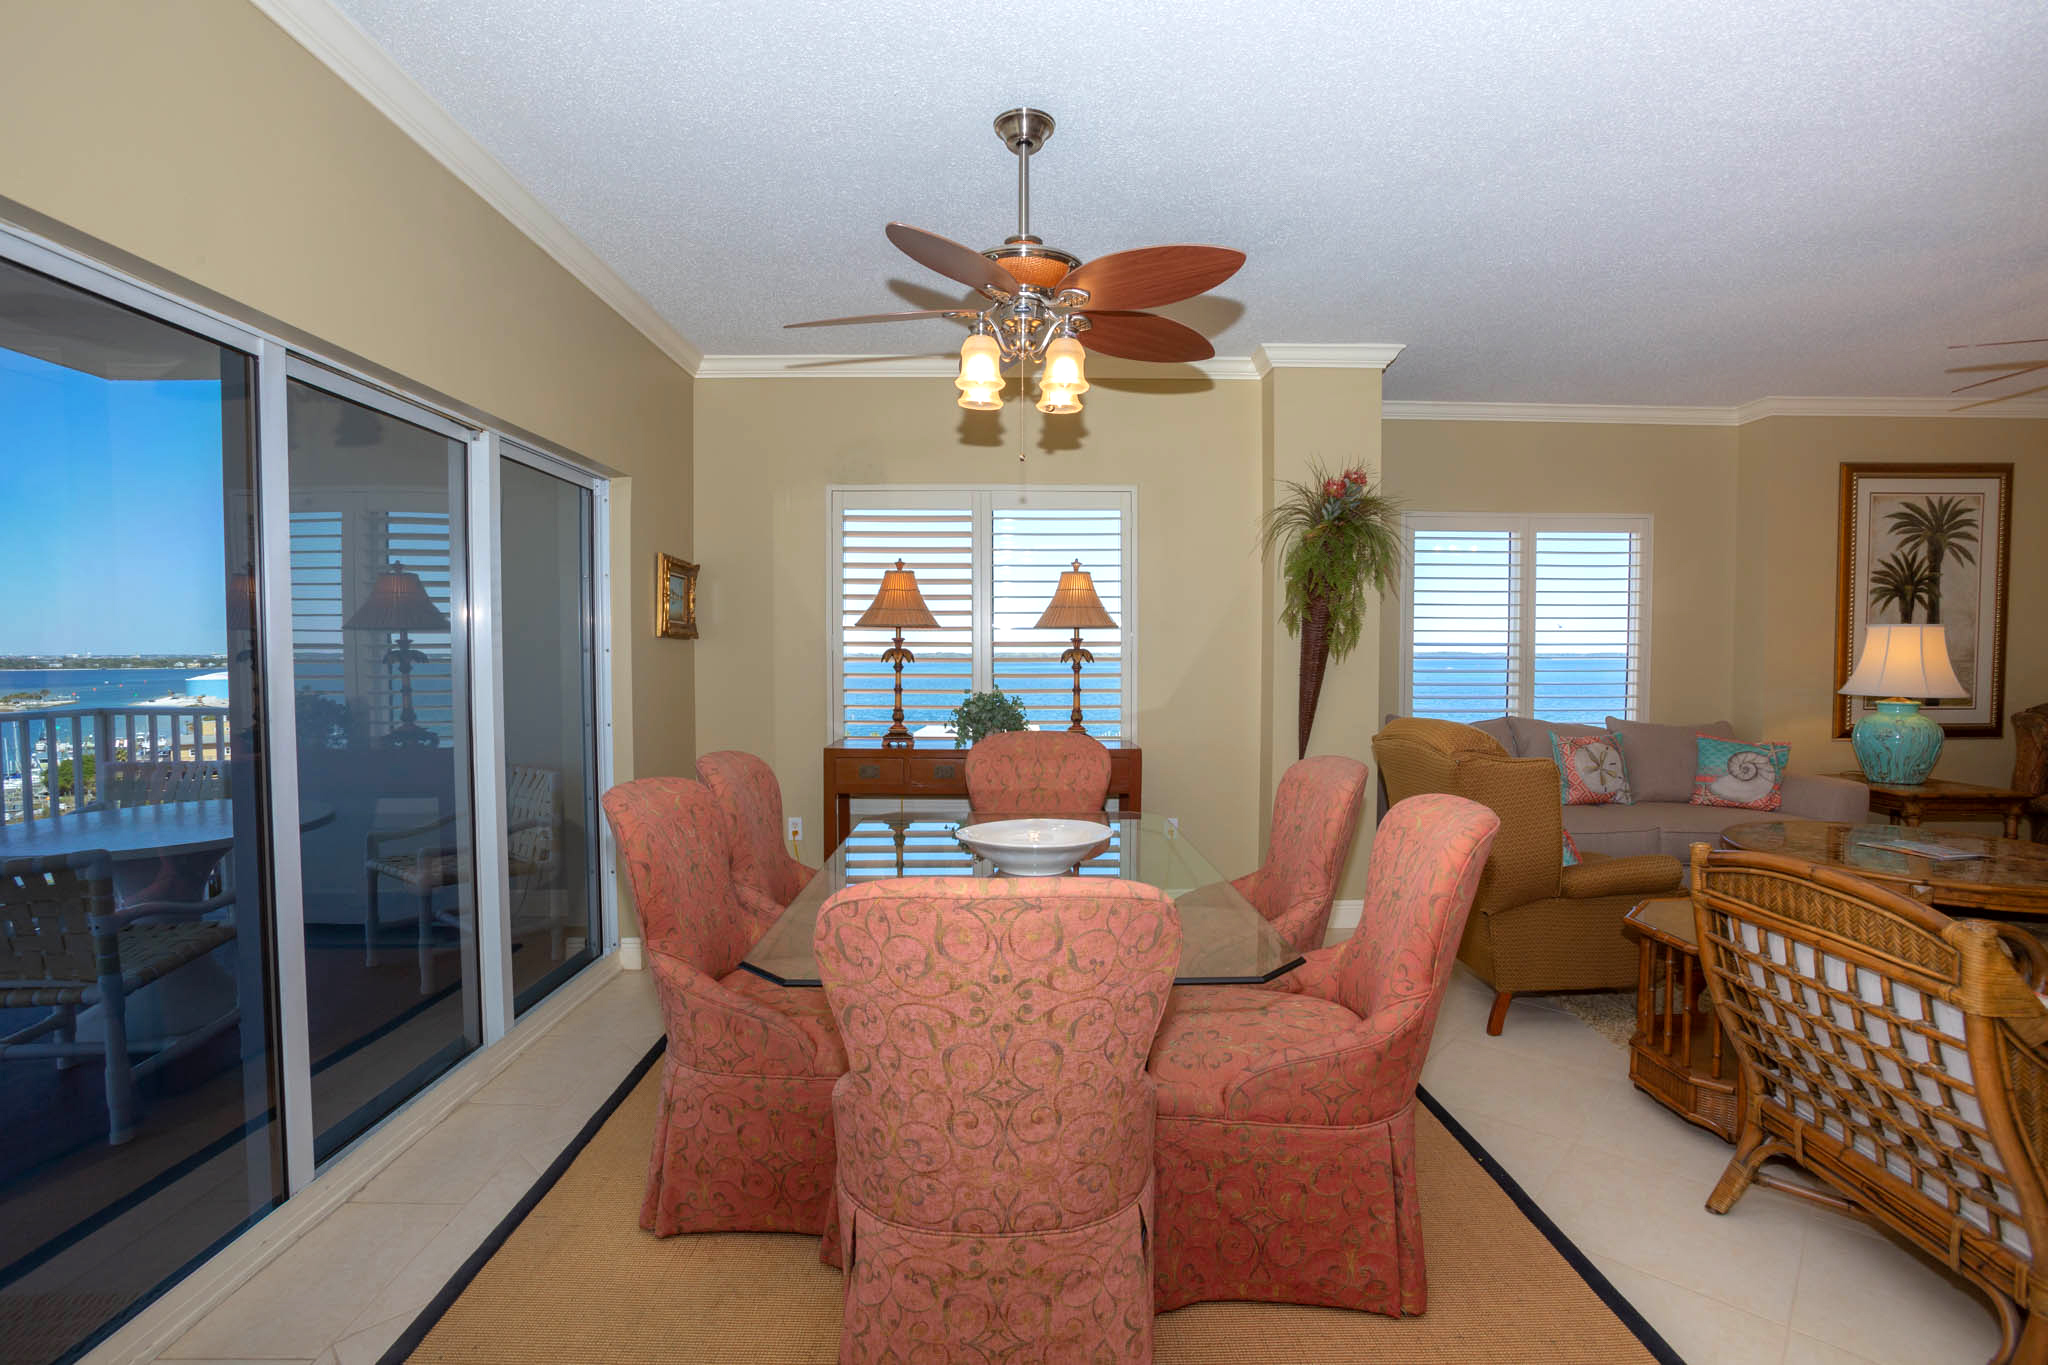 South Harbour #9F Condo rental in South Harbour ~ Pensacola Beach Vacation Rentals by BeachGuide in Pensacola Beach Florida - #14